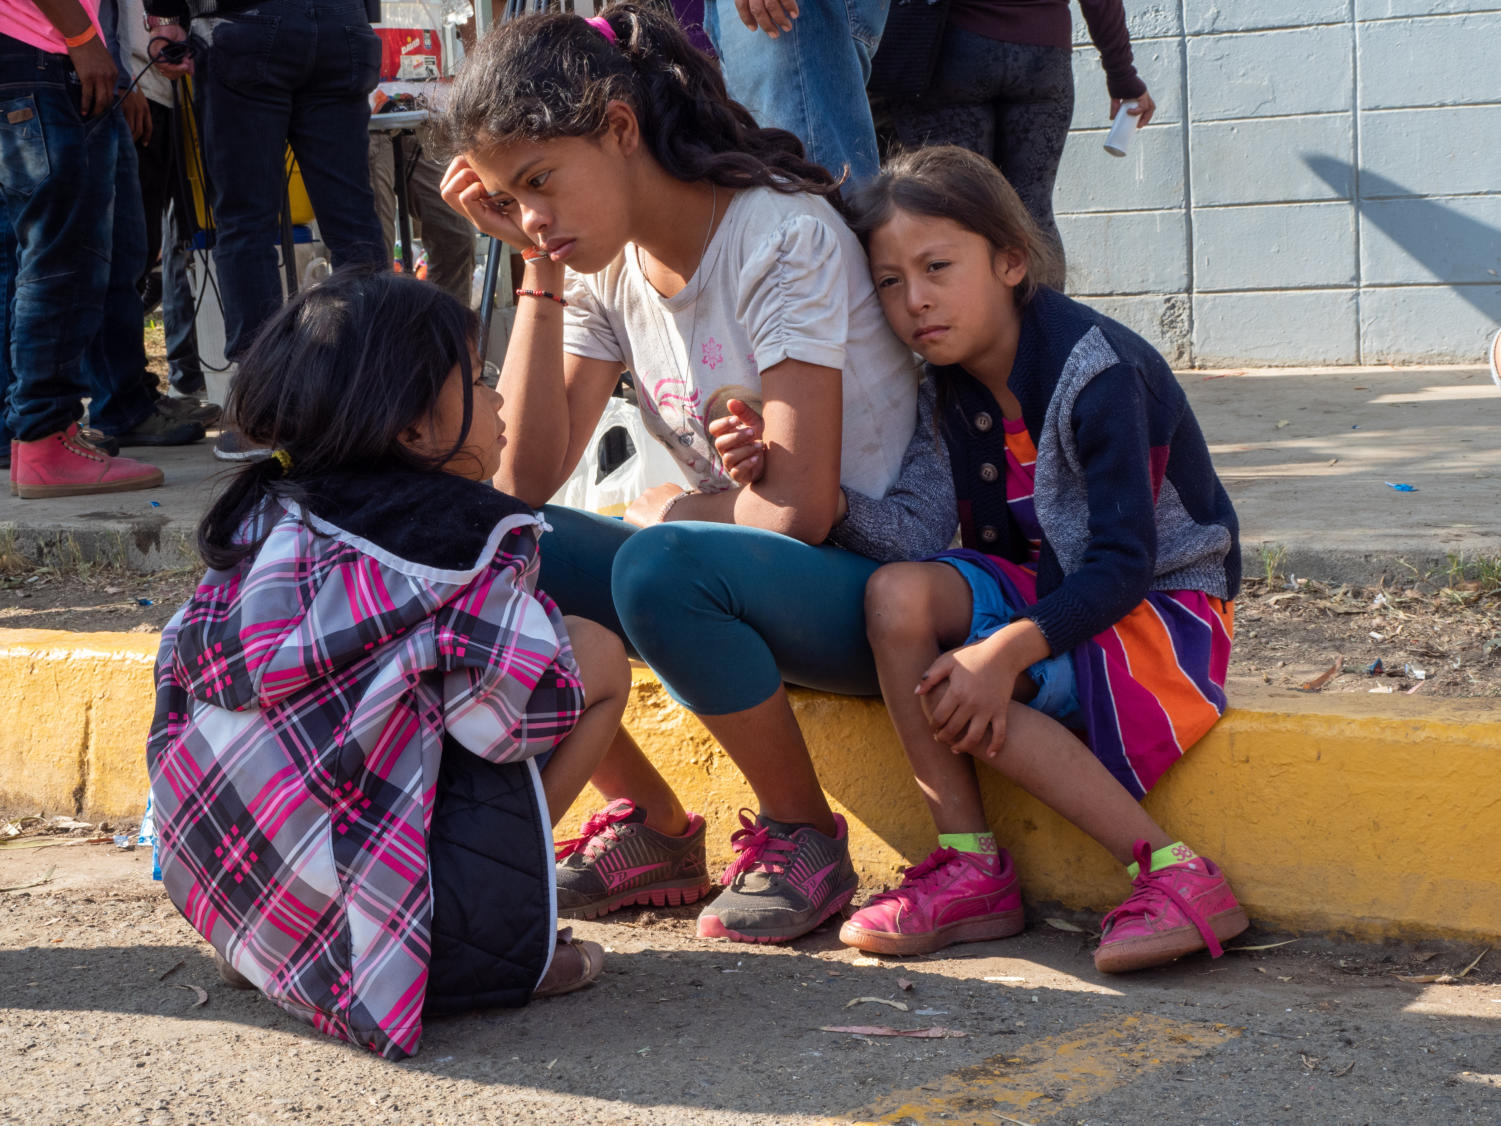 Three sisters sit on the curb in front of Benito Juarez sports center, worried about the disappearance of their mother, who left with a friend to find food the previous night.